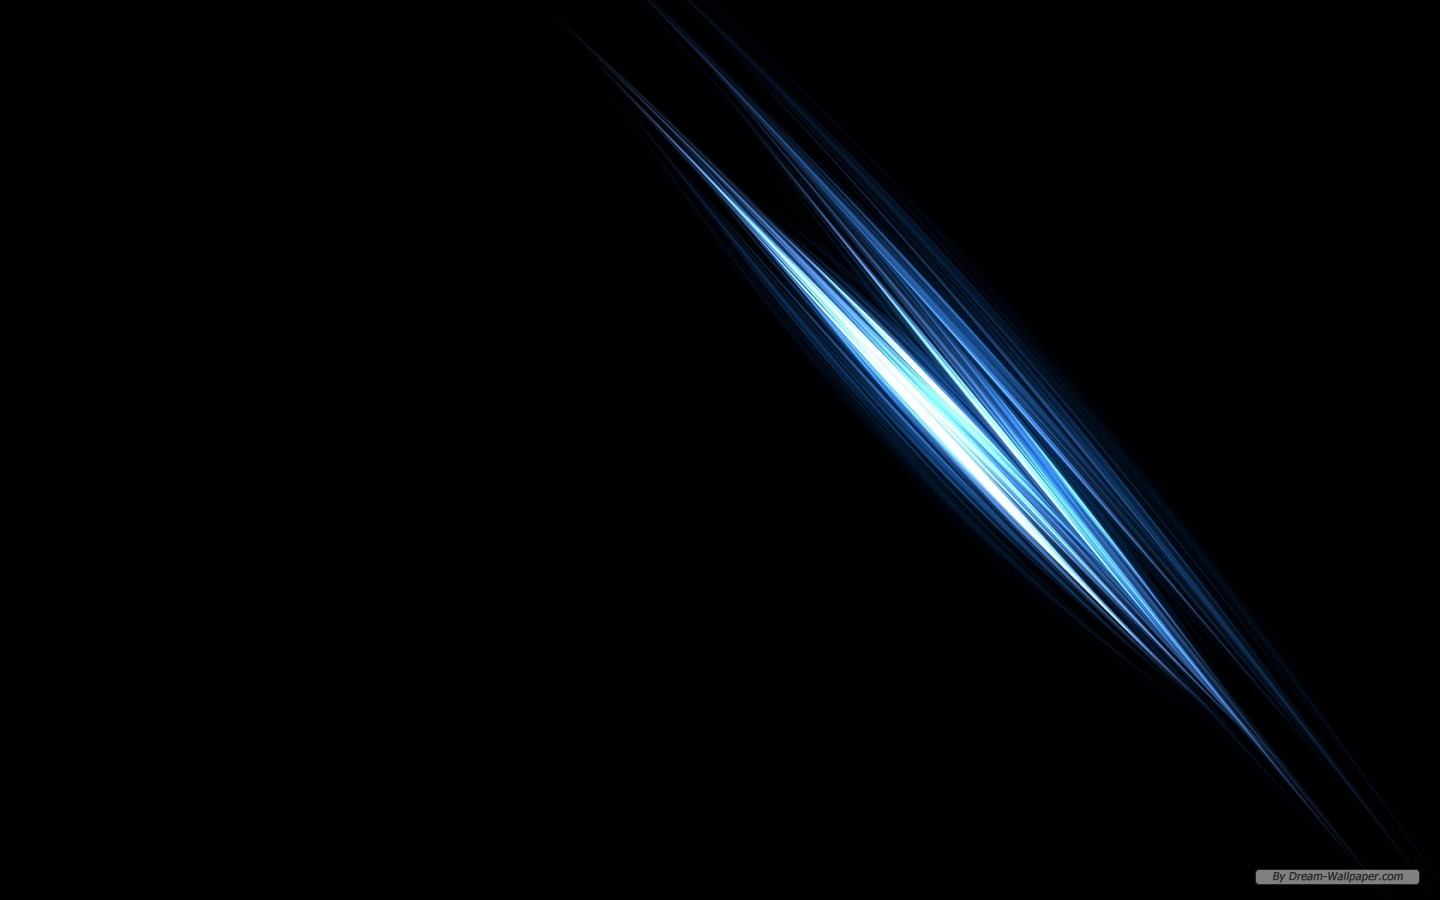 Black Computer Backgrounds 25 Desktop Wallpaper 1440x900